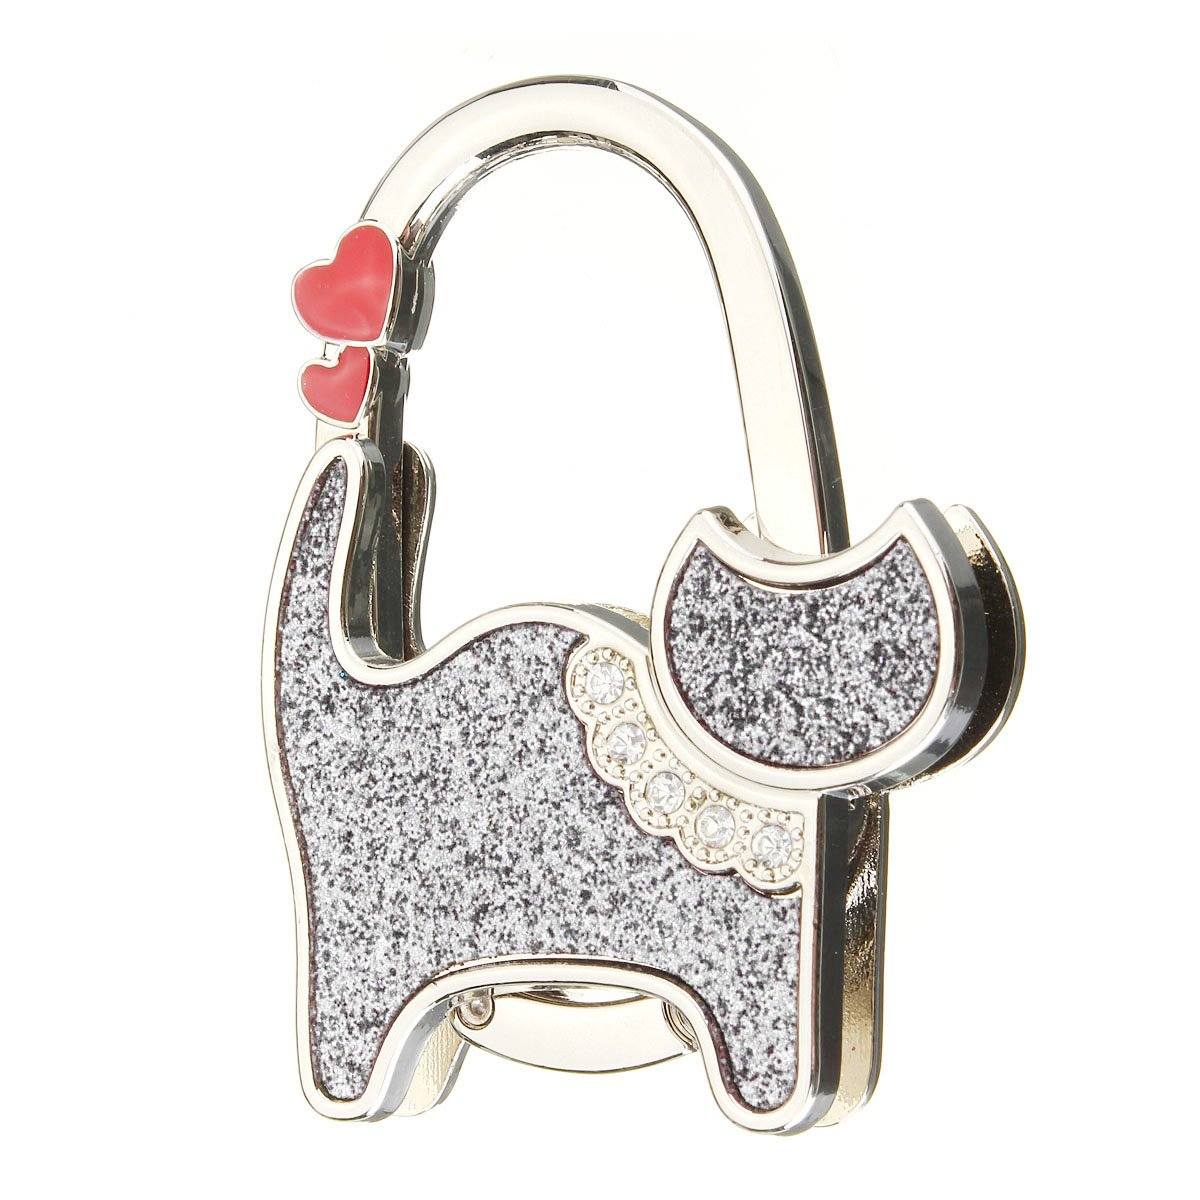 TEXU beautiful cat compact handbag holder Hanger Bag Holder white beautiful darkness